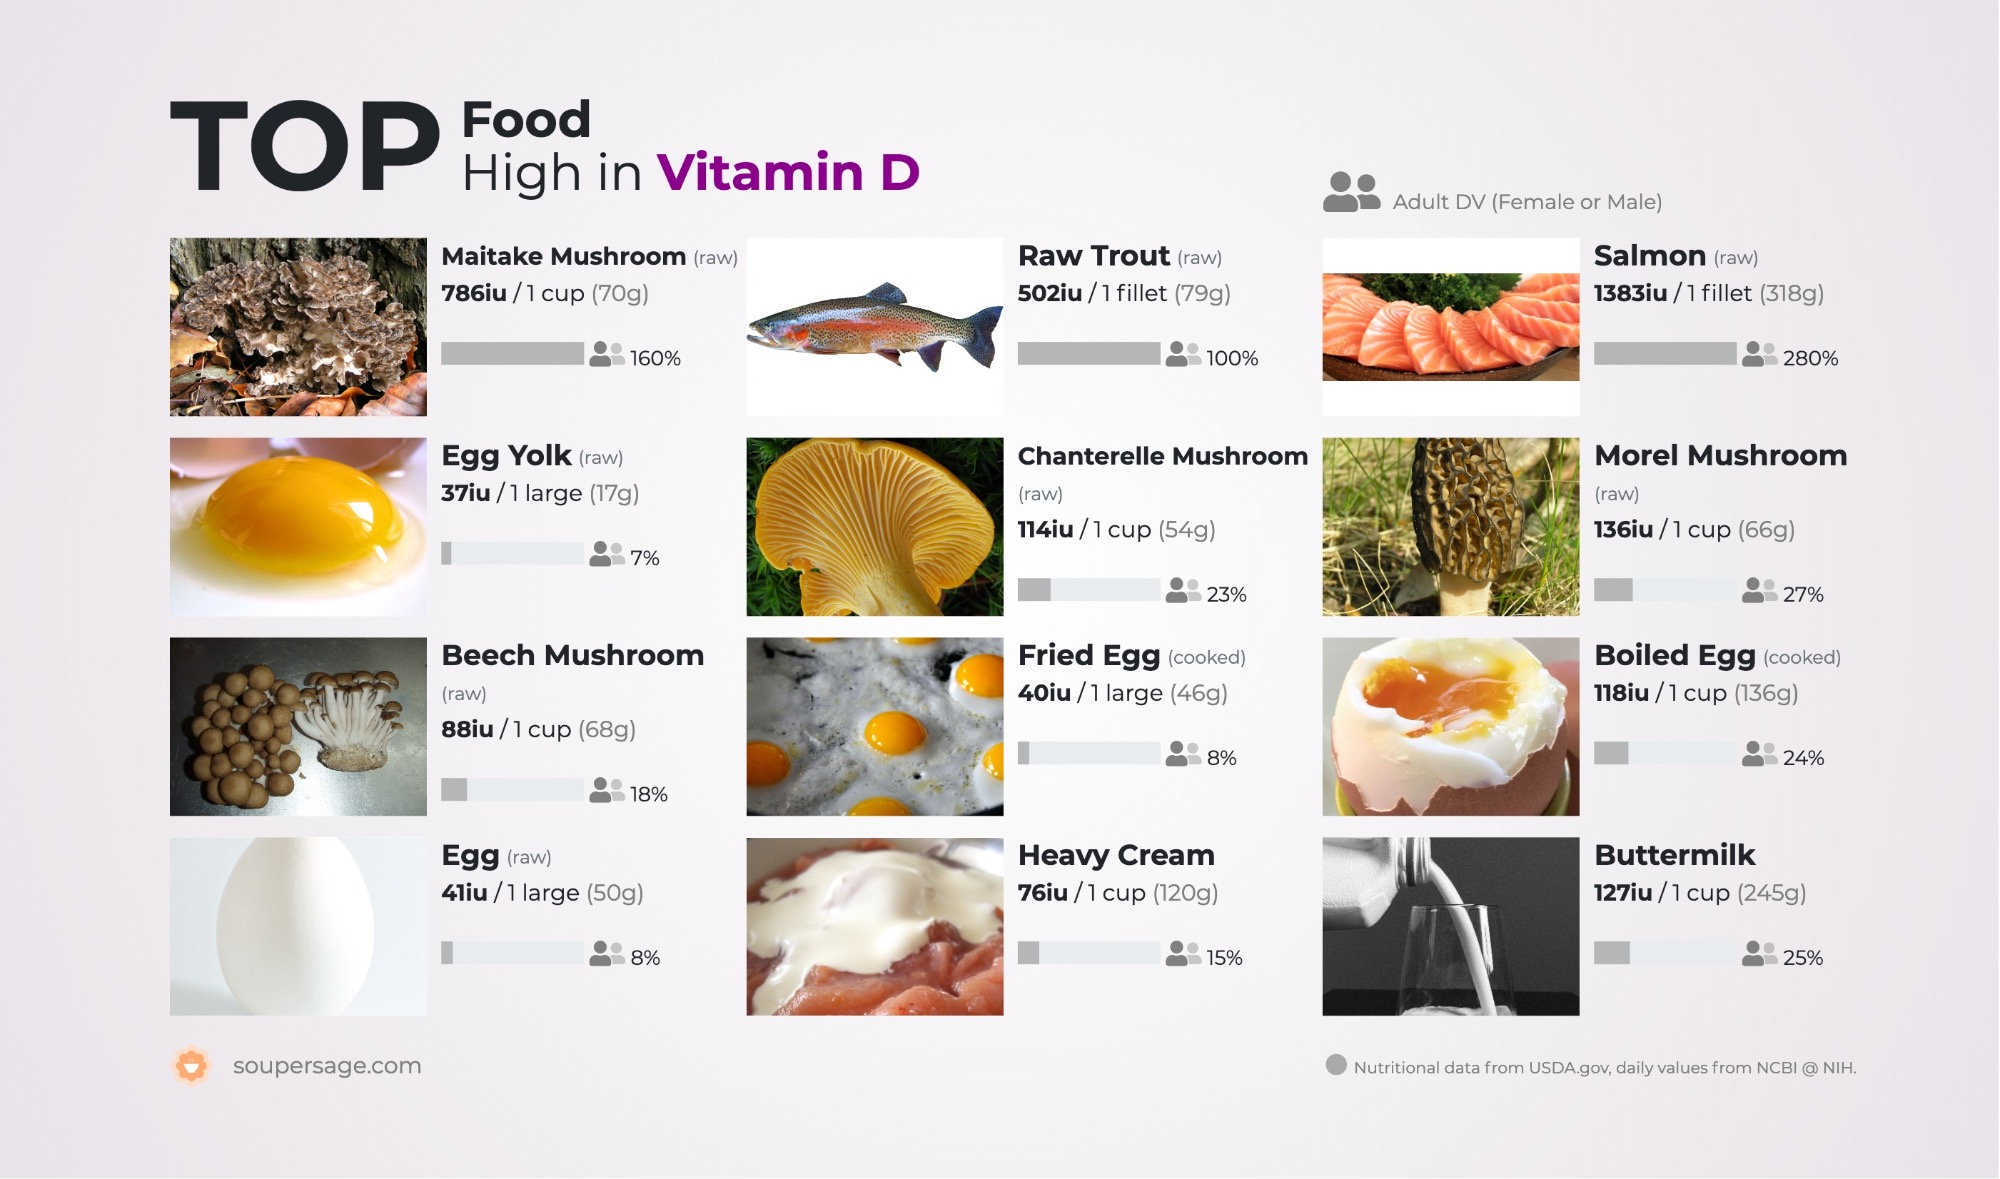 image of Top Food High in Vitamin D